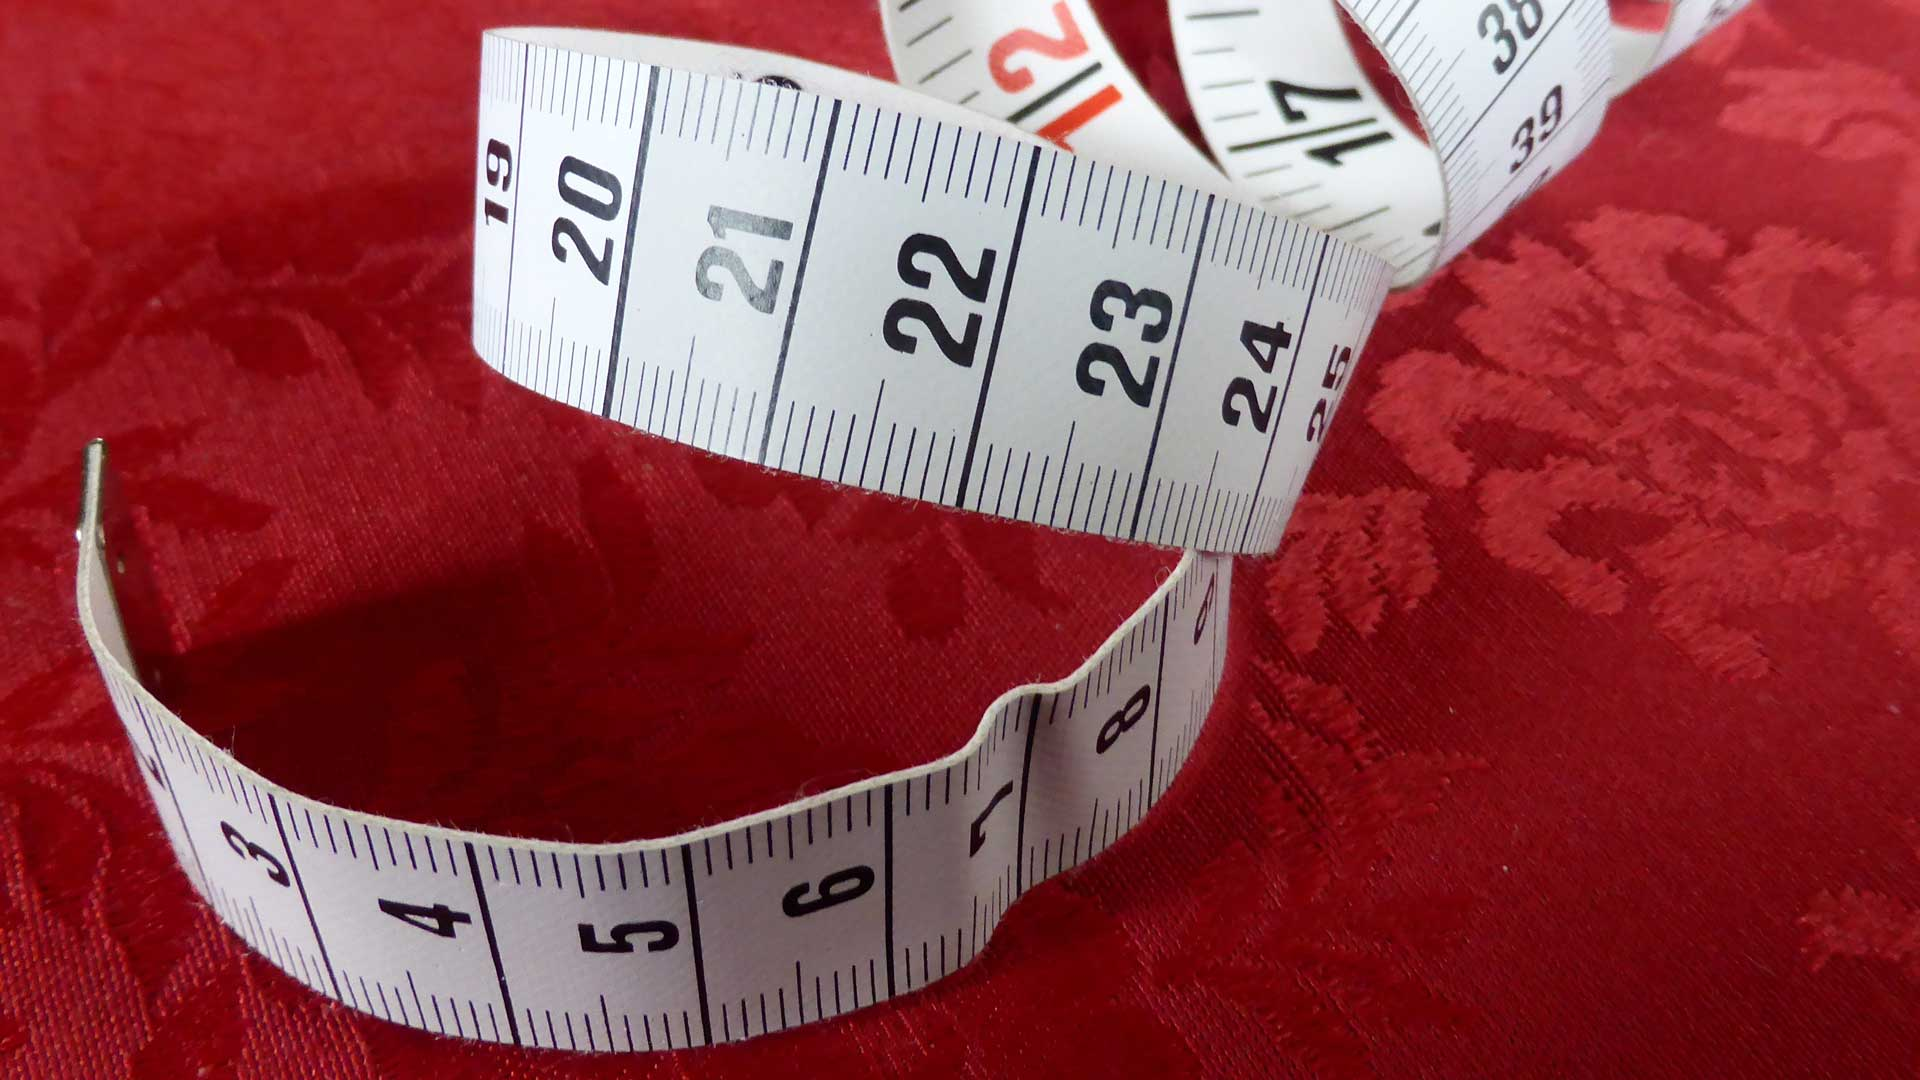 3 Omnichannel Metrics for a Successful Implementation